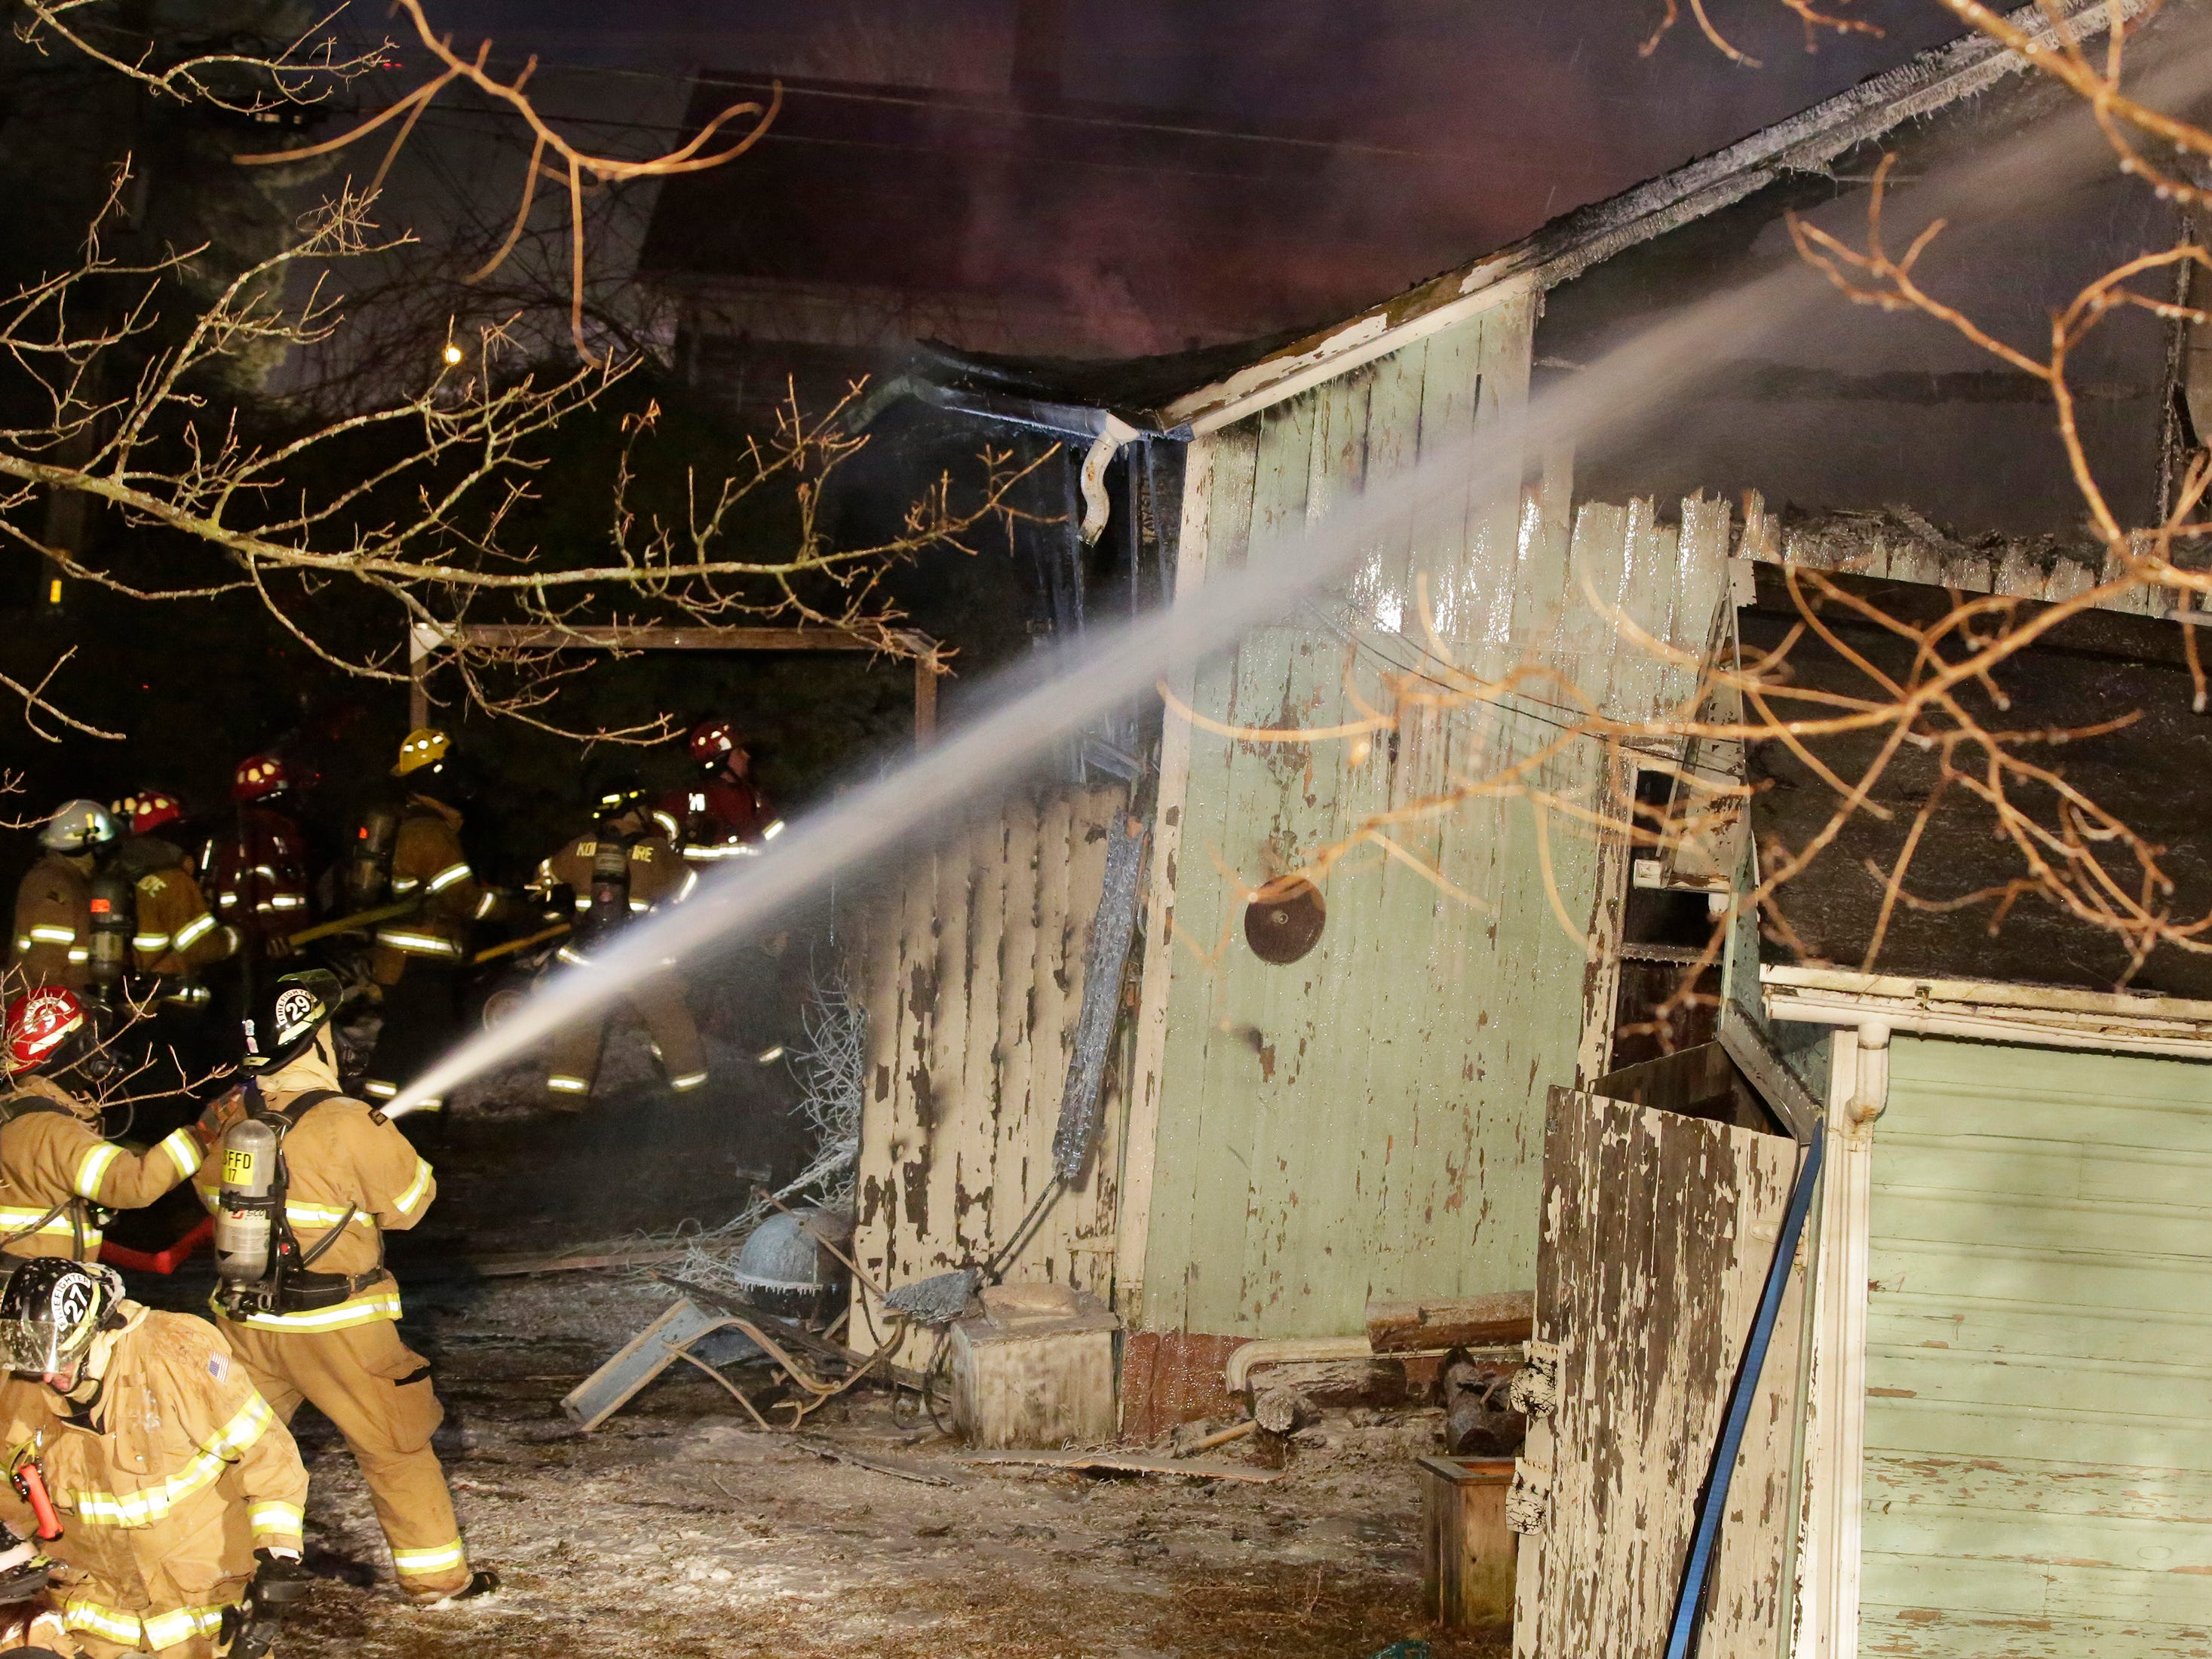 Firefighters work to extinguish the structure fire, Wednesday, February 21, 2018, in Sheboygan Falls, Wis. A building known as the barn caught fire and several departments assisted at the blaze.